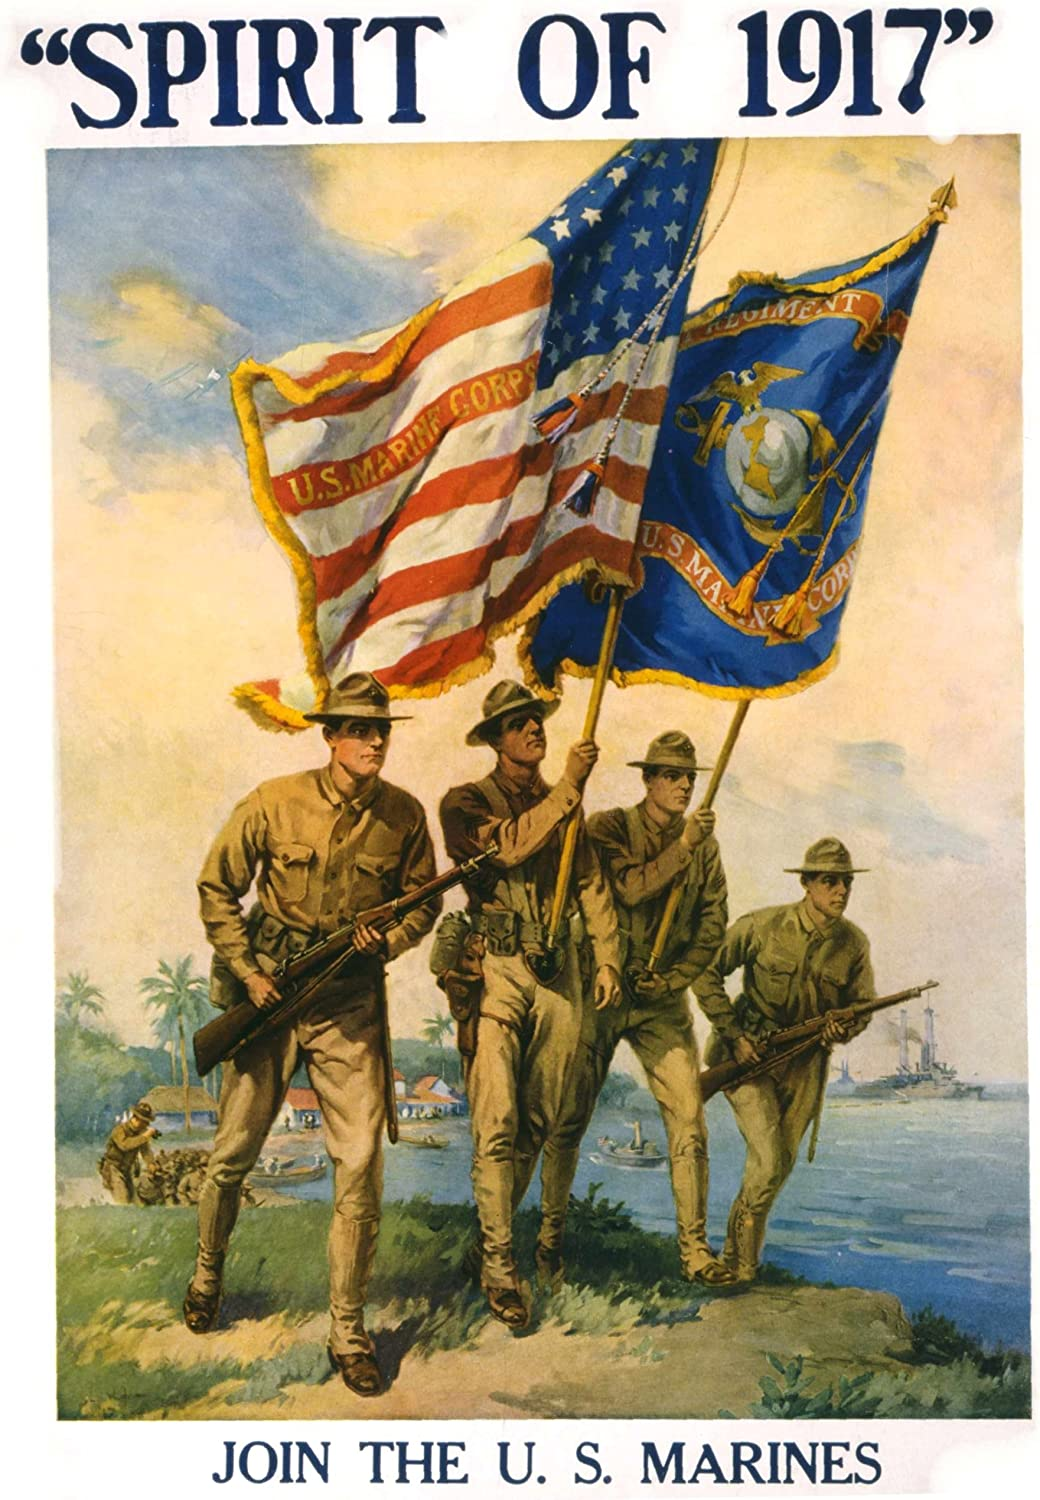 WORLD WAR II marines coast guard tribute poster MILITARY COLLECTORS 24X36